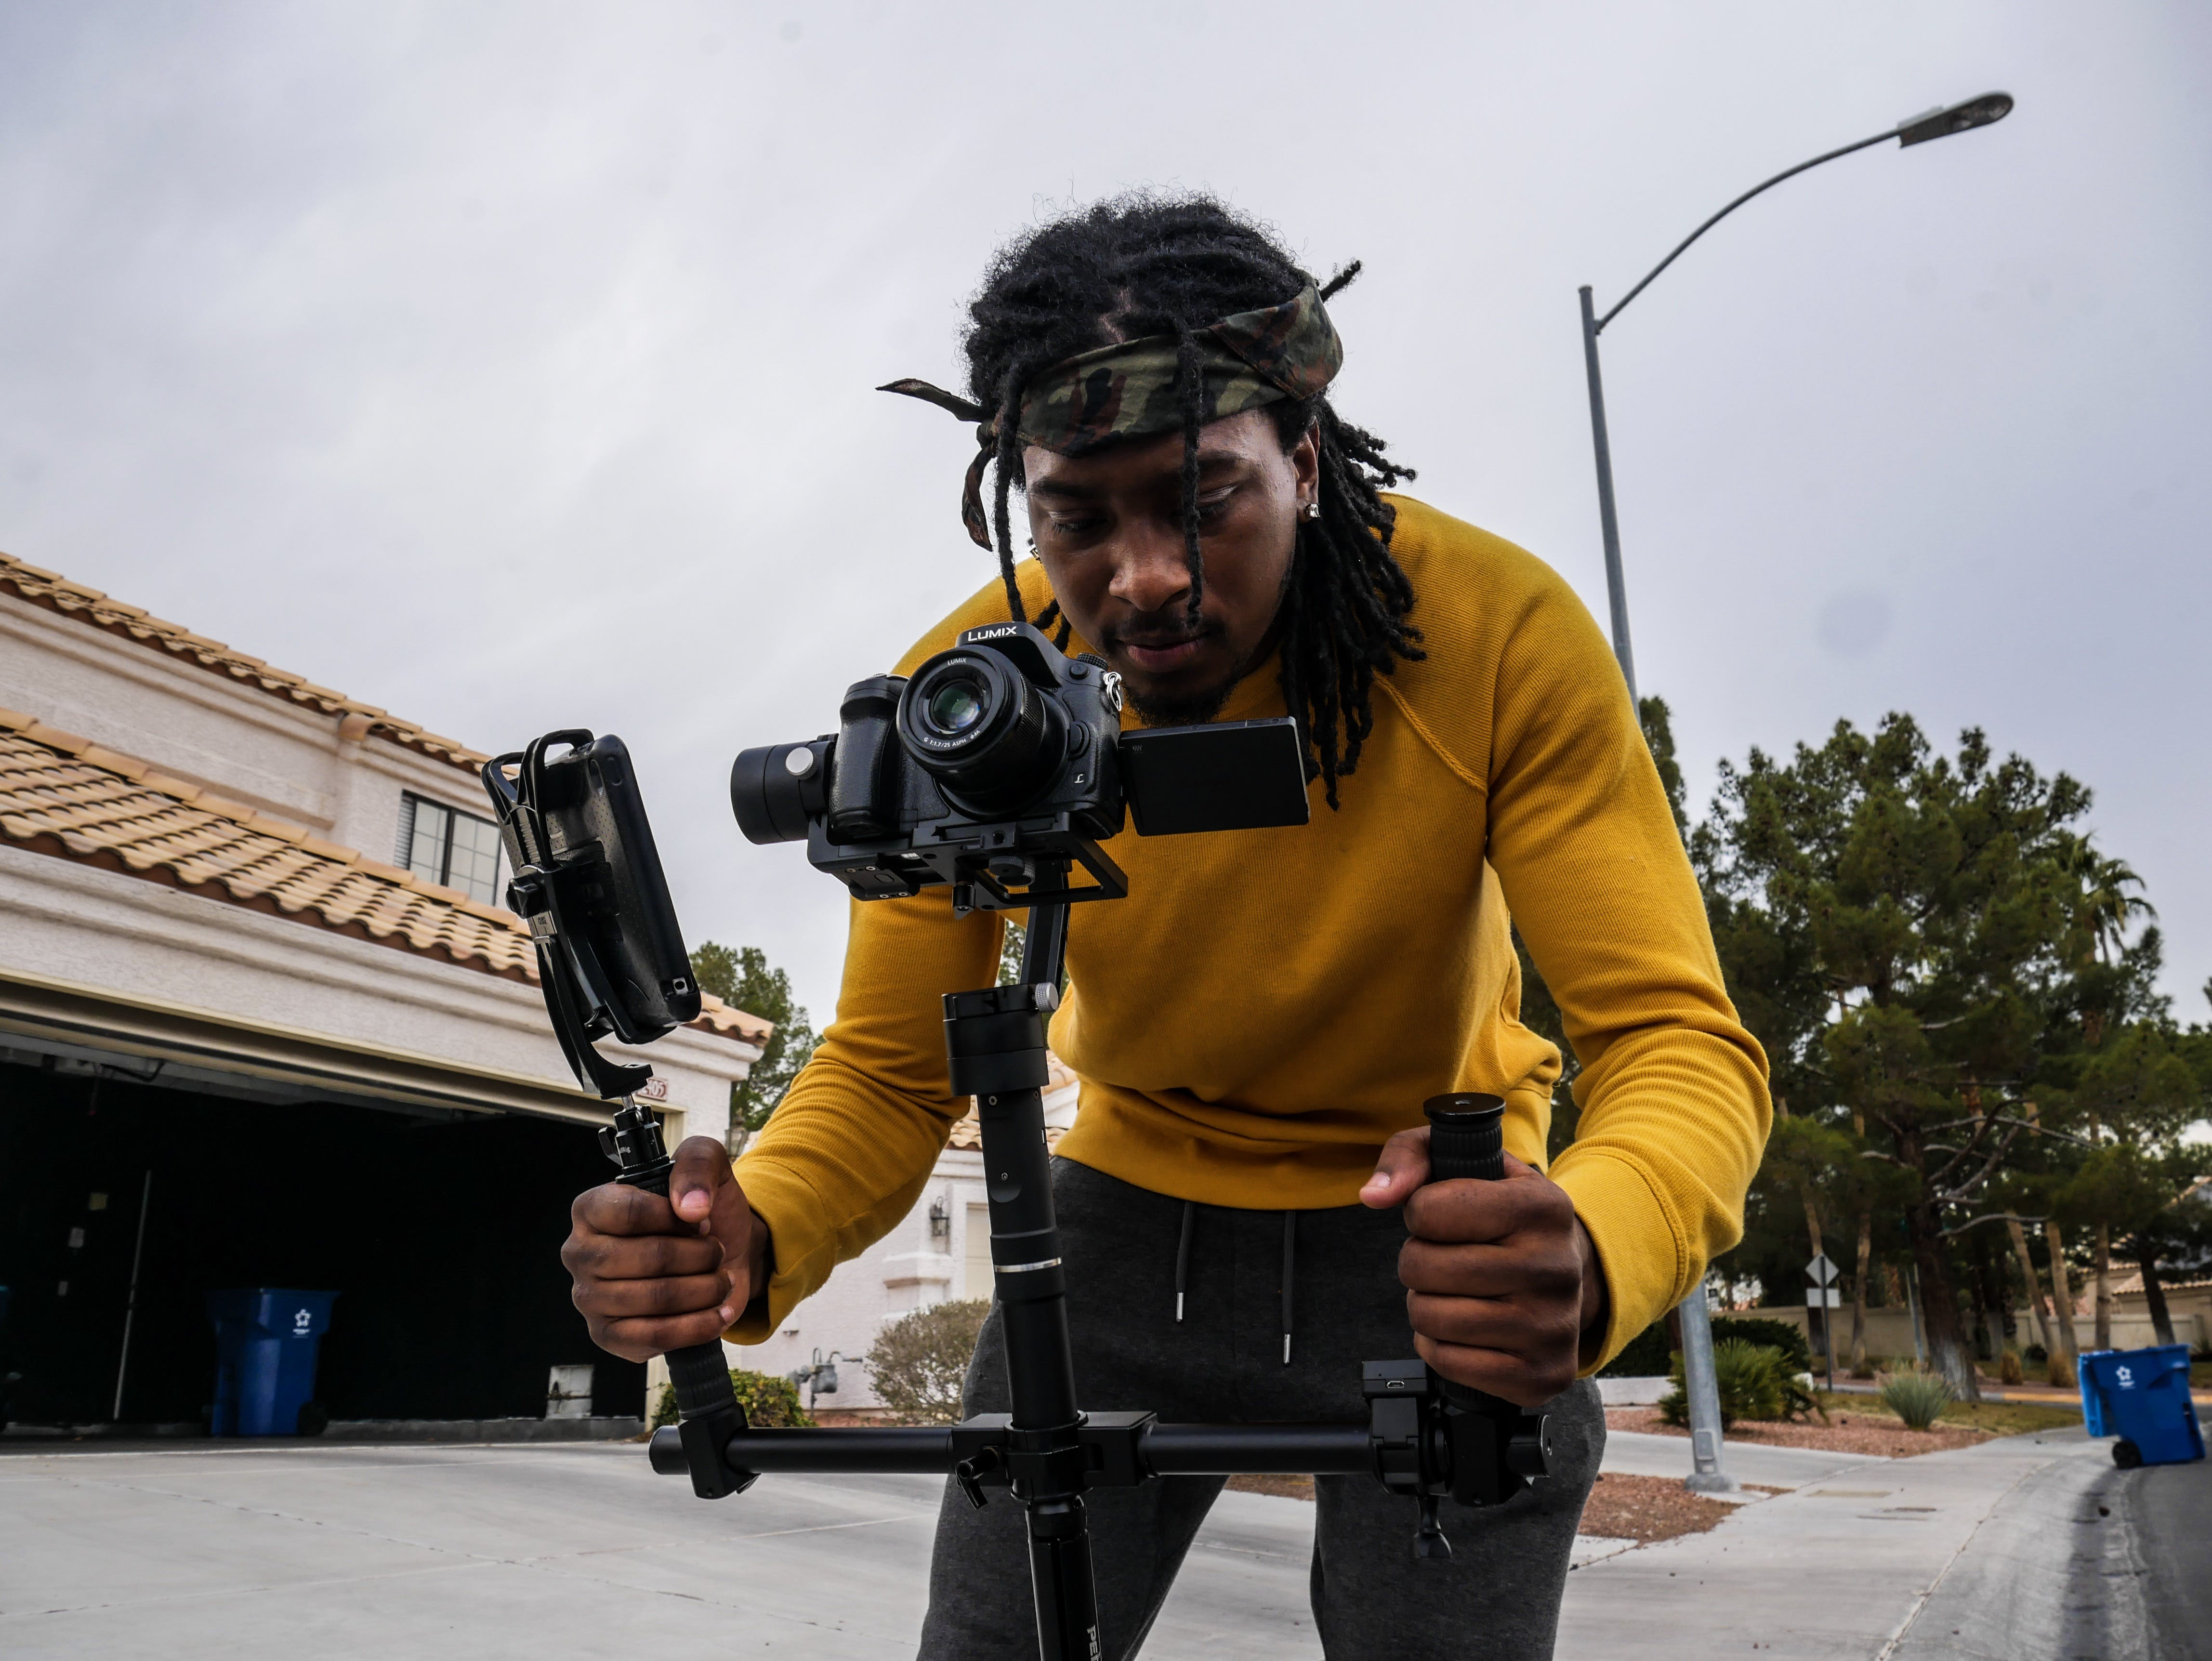 Man Wearing Yellow Long-sleeved Shirt Holding Camera Stand